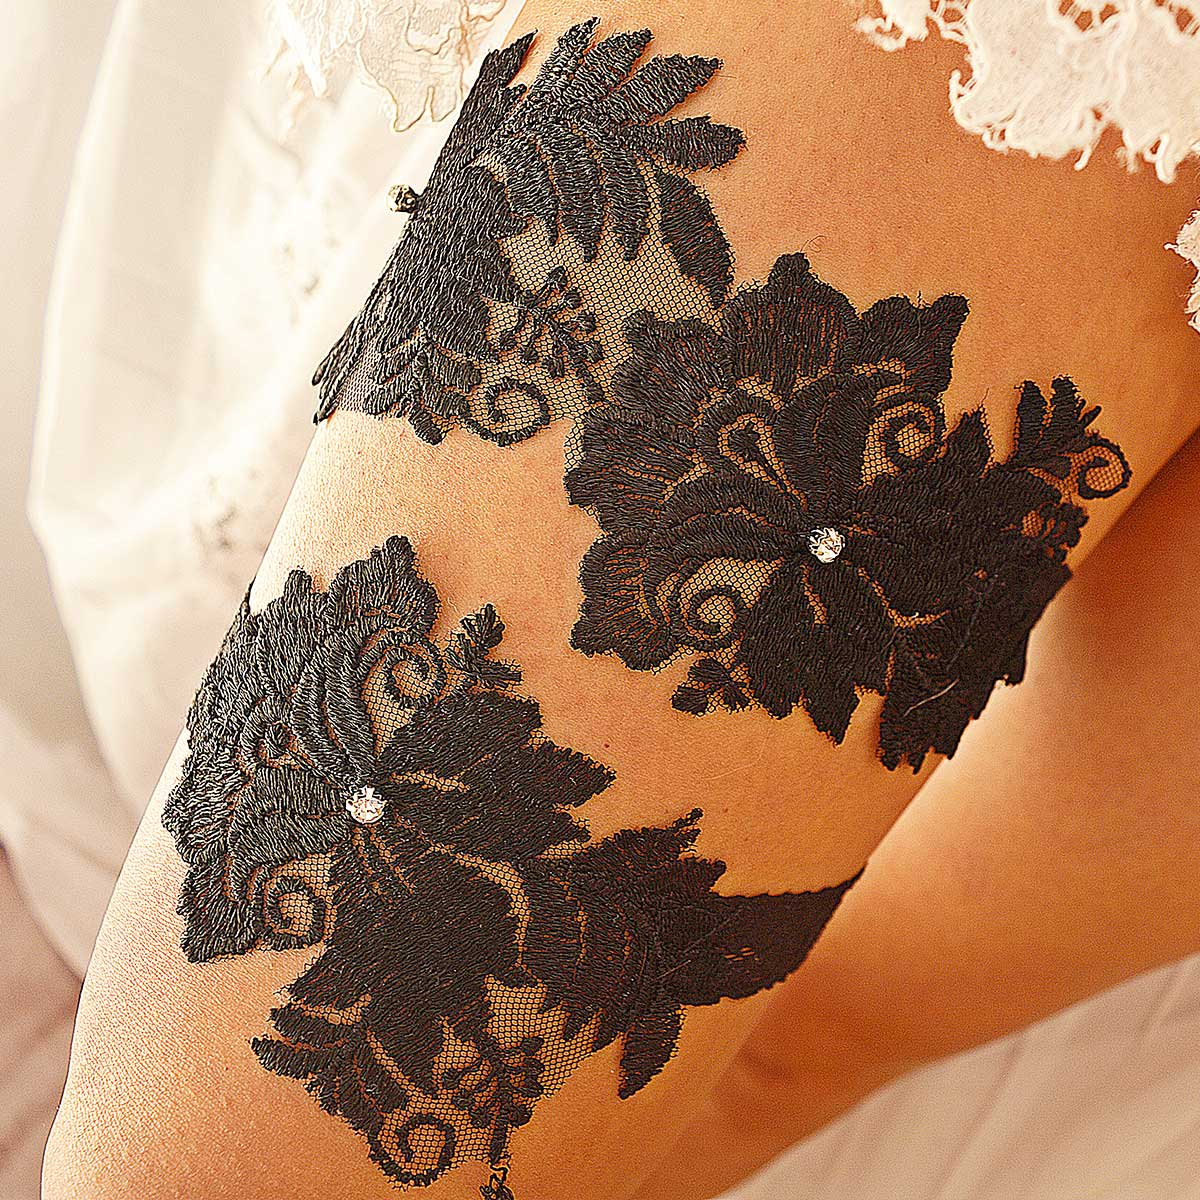 Black Bridal Garter With Clear Rhinestone & Flower Applique - Wedding Garter - SuzannaM Designs